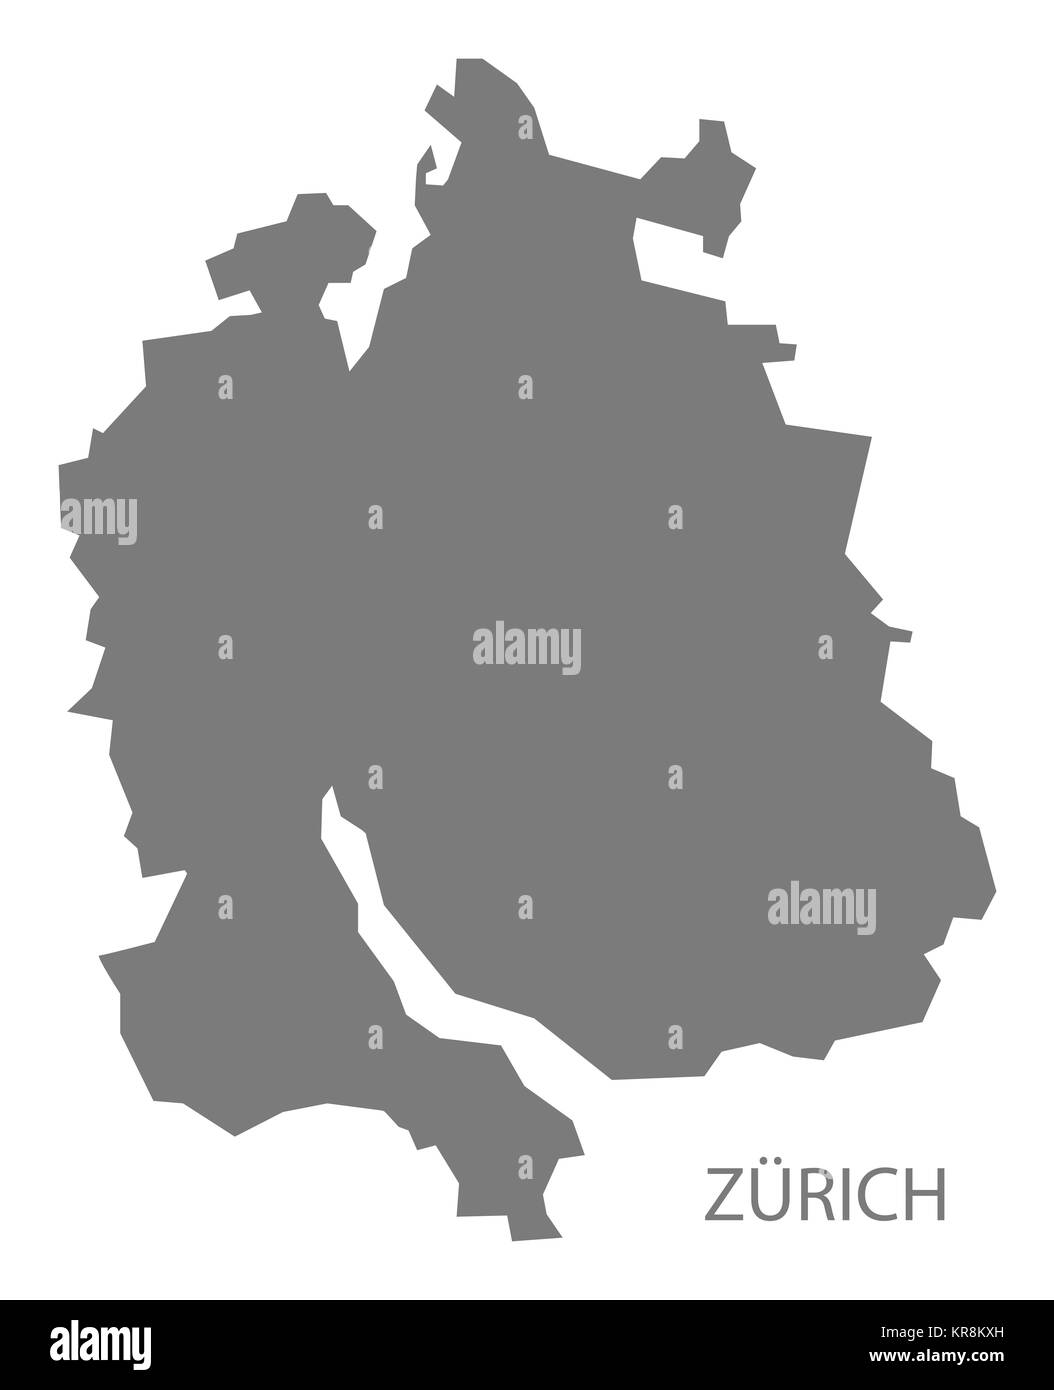 Zurich map vector stock photos zurich map vector stock images alamy zurich switzerland map grey stock image gumiabroncs Gallery